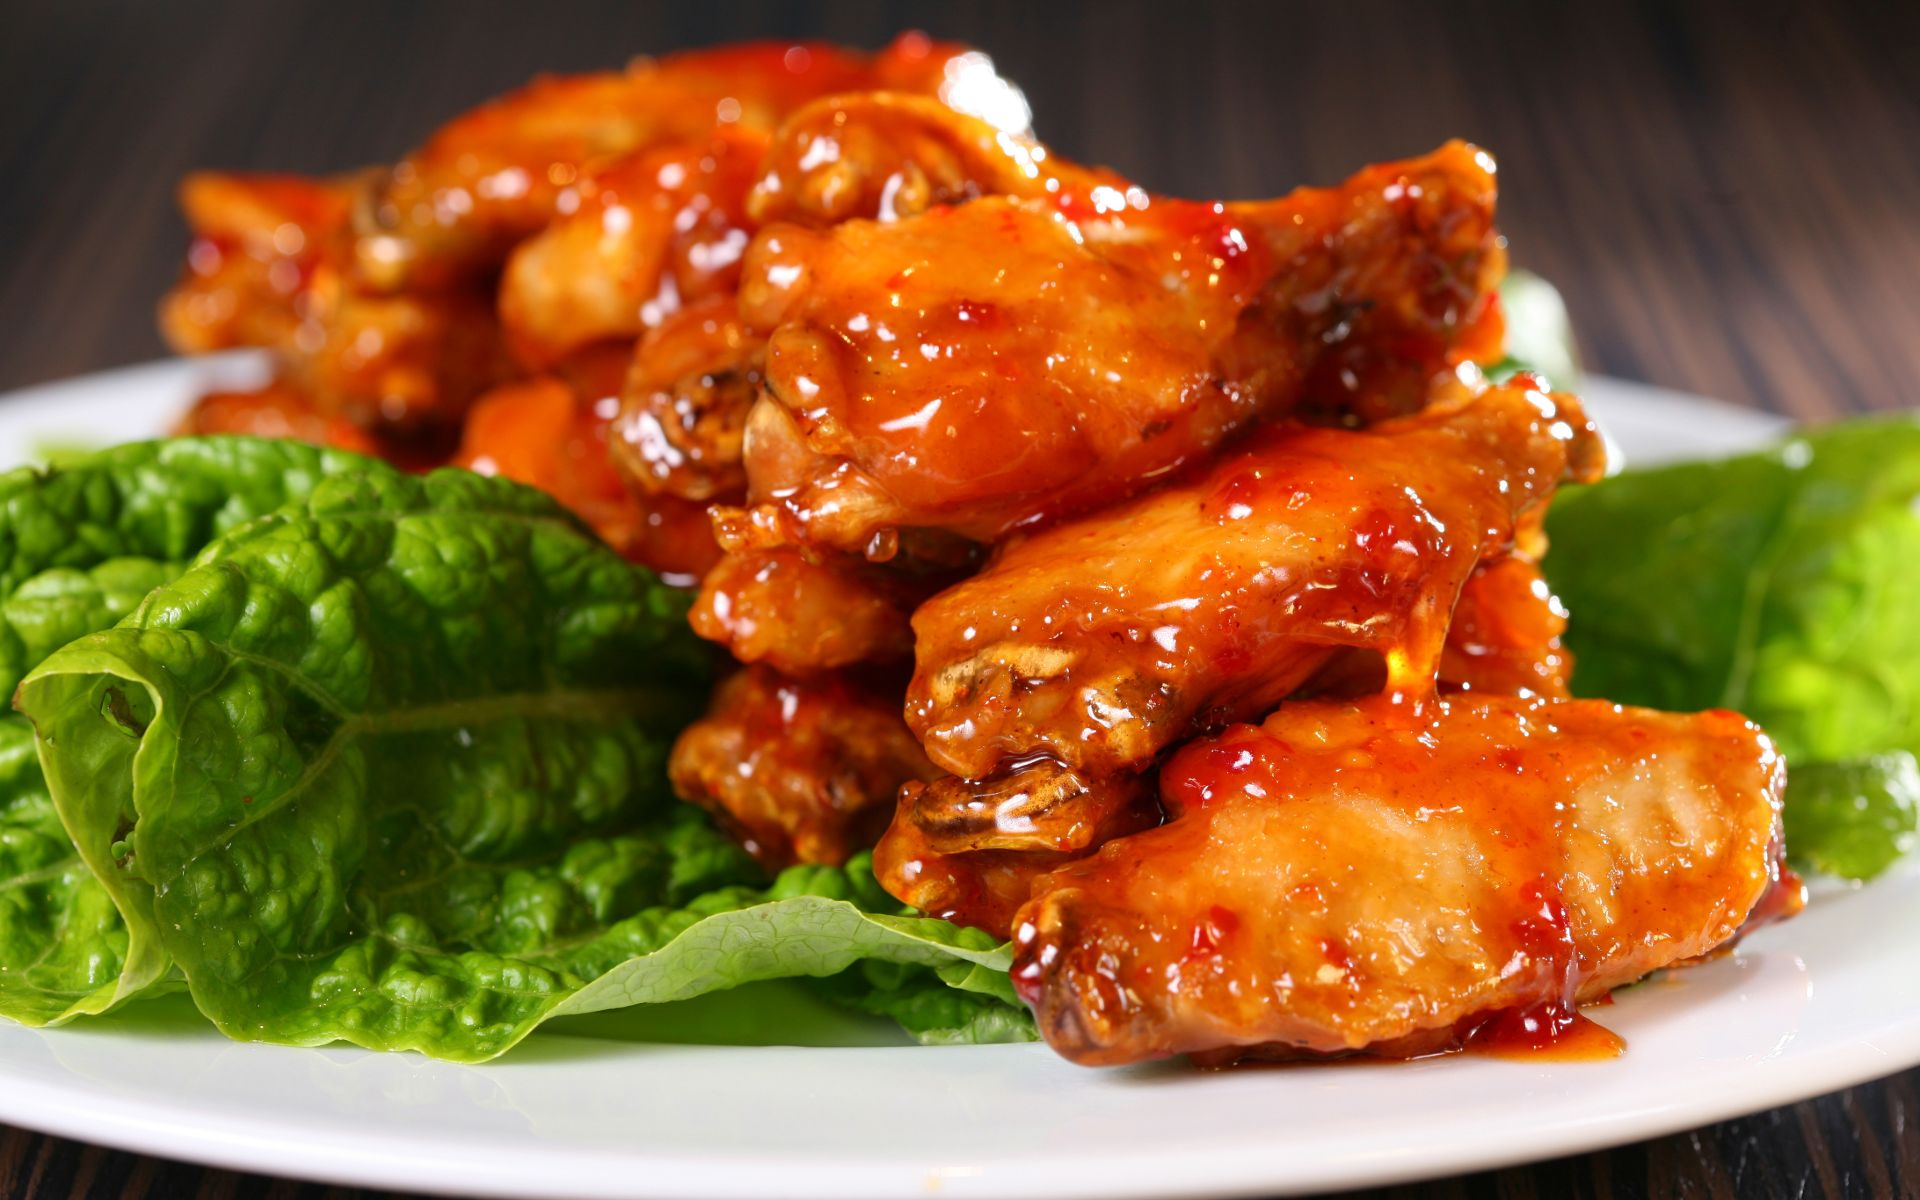 Buffalo chicken wings on a plate over lettuce